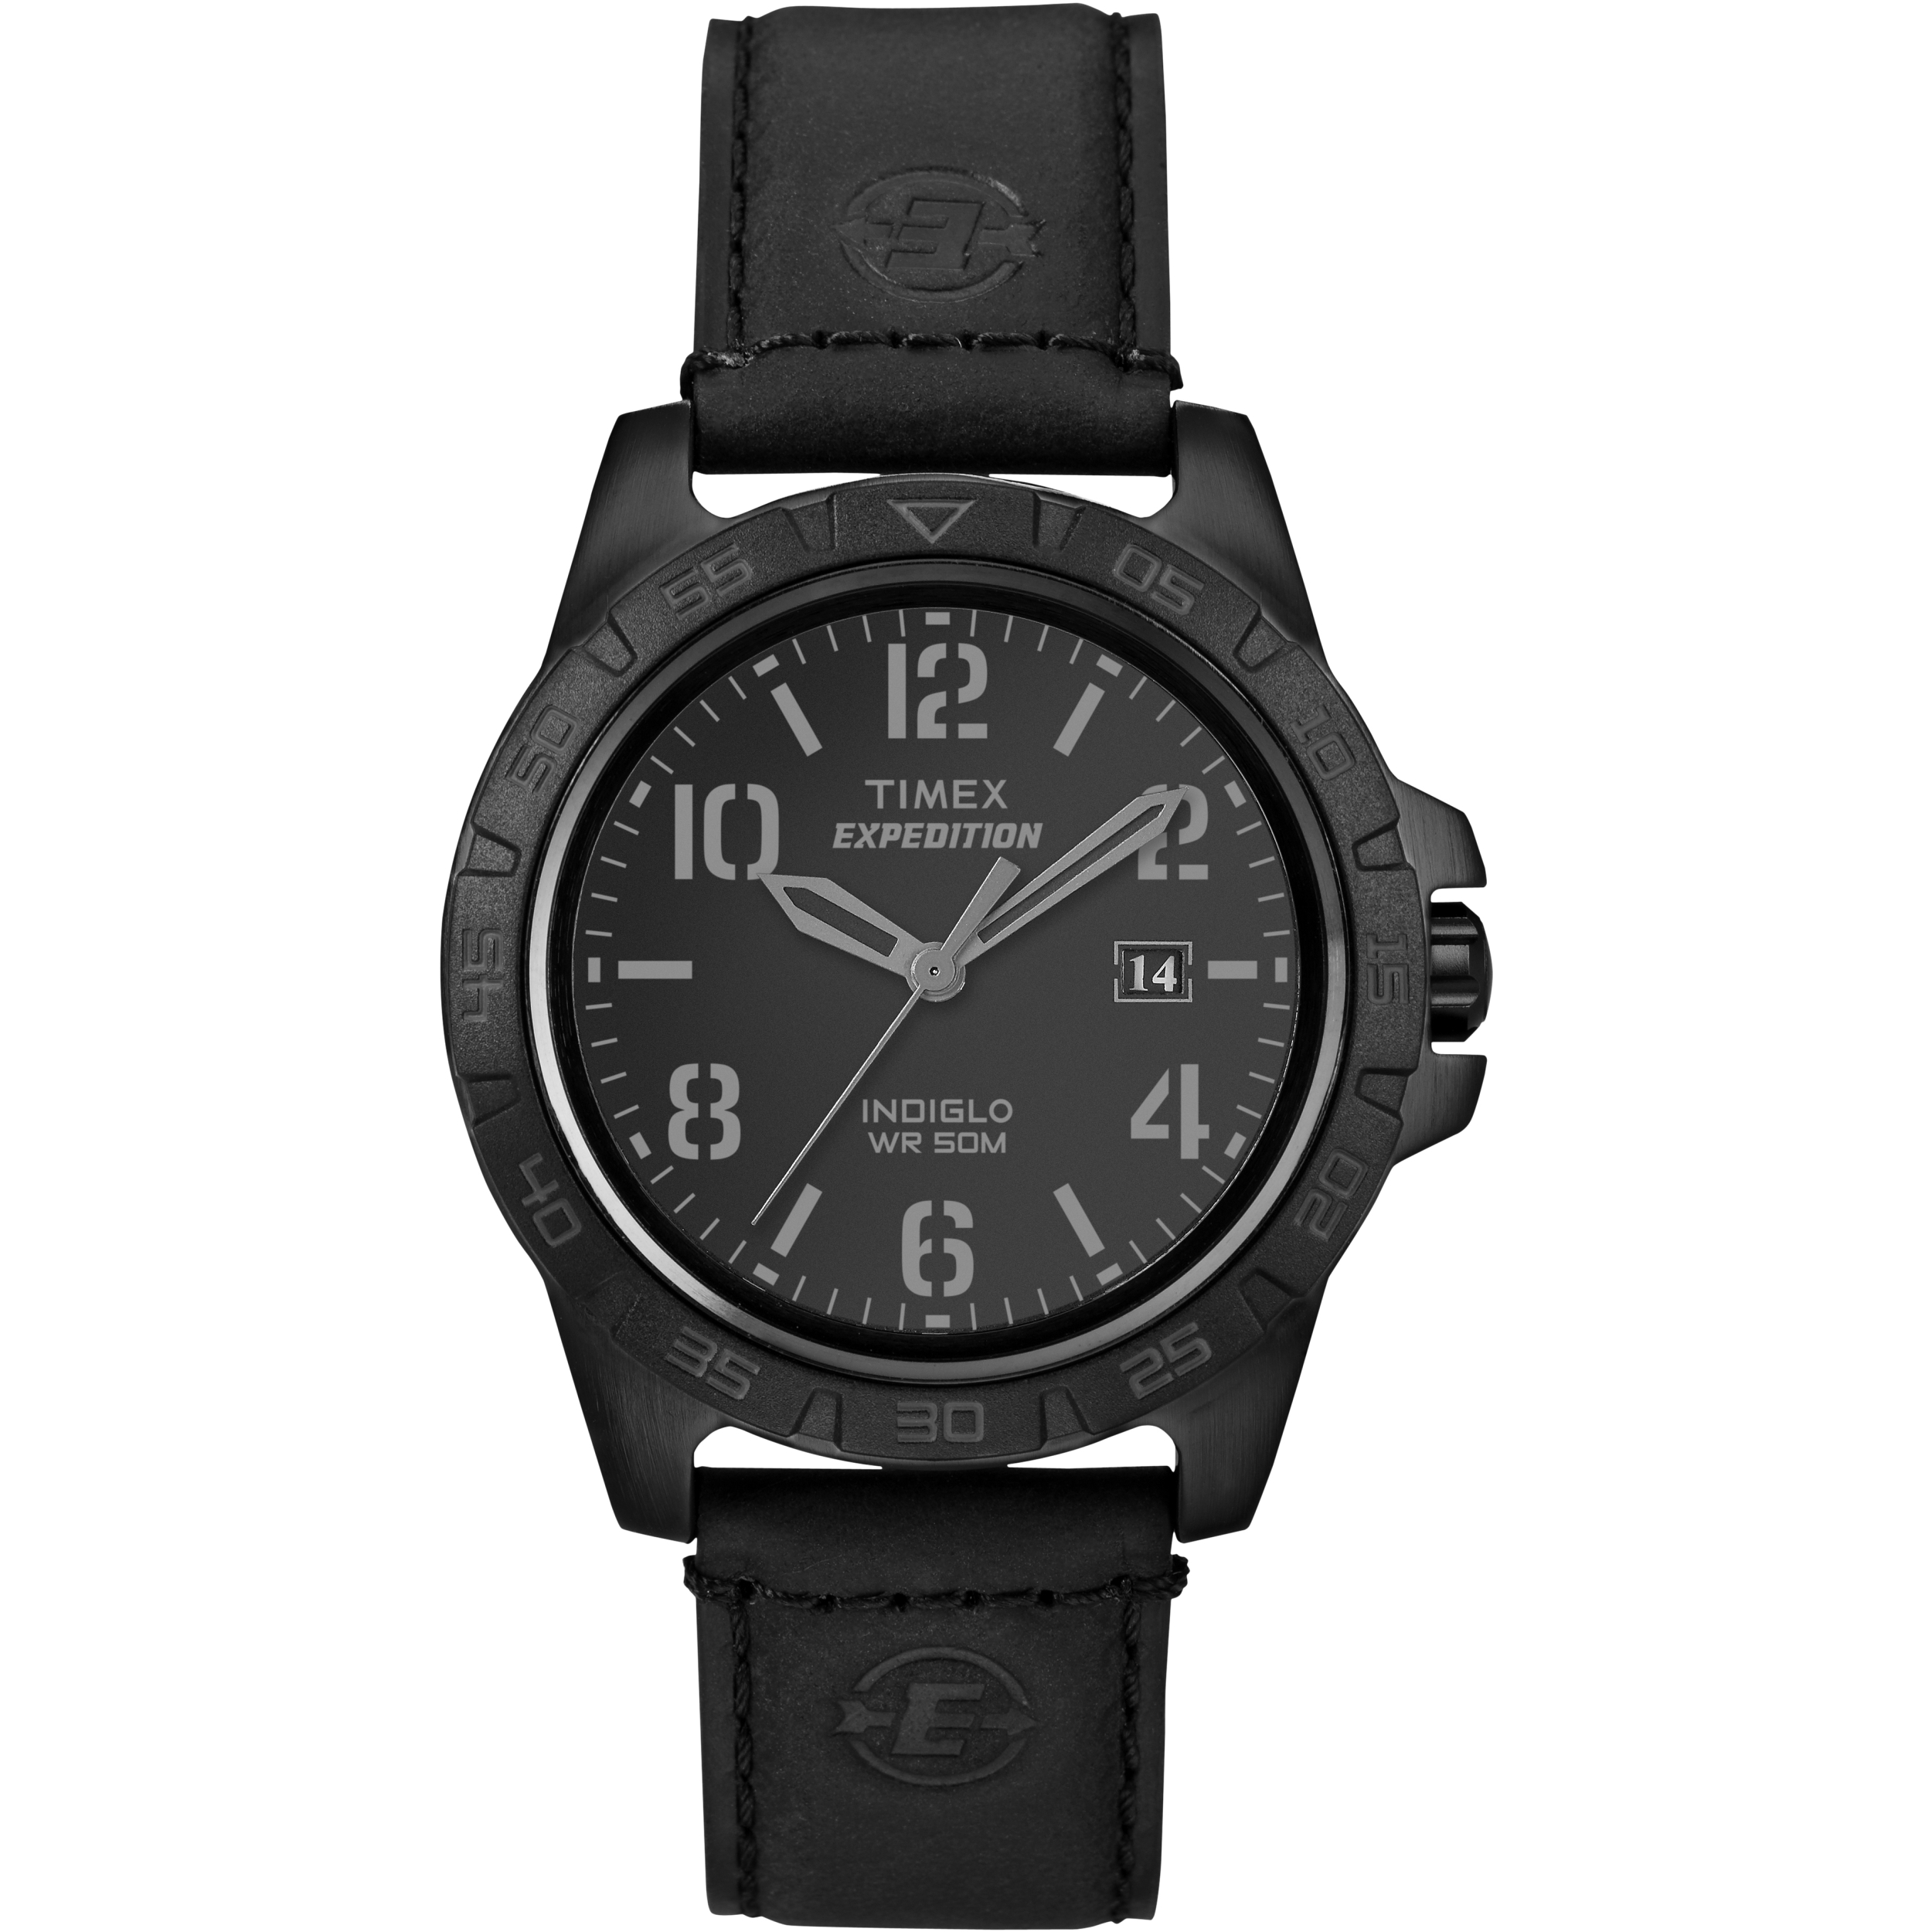 the under rug since ball rugged watches accessory conditions accuracy perfect adverse